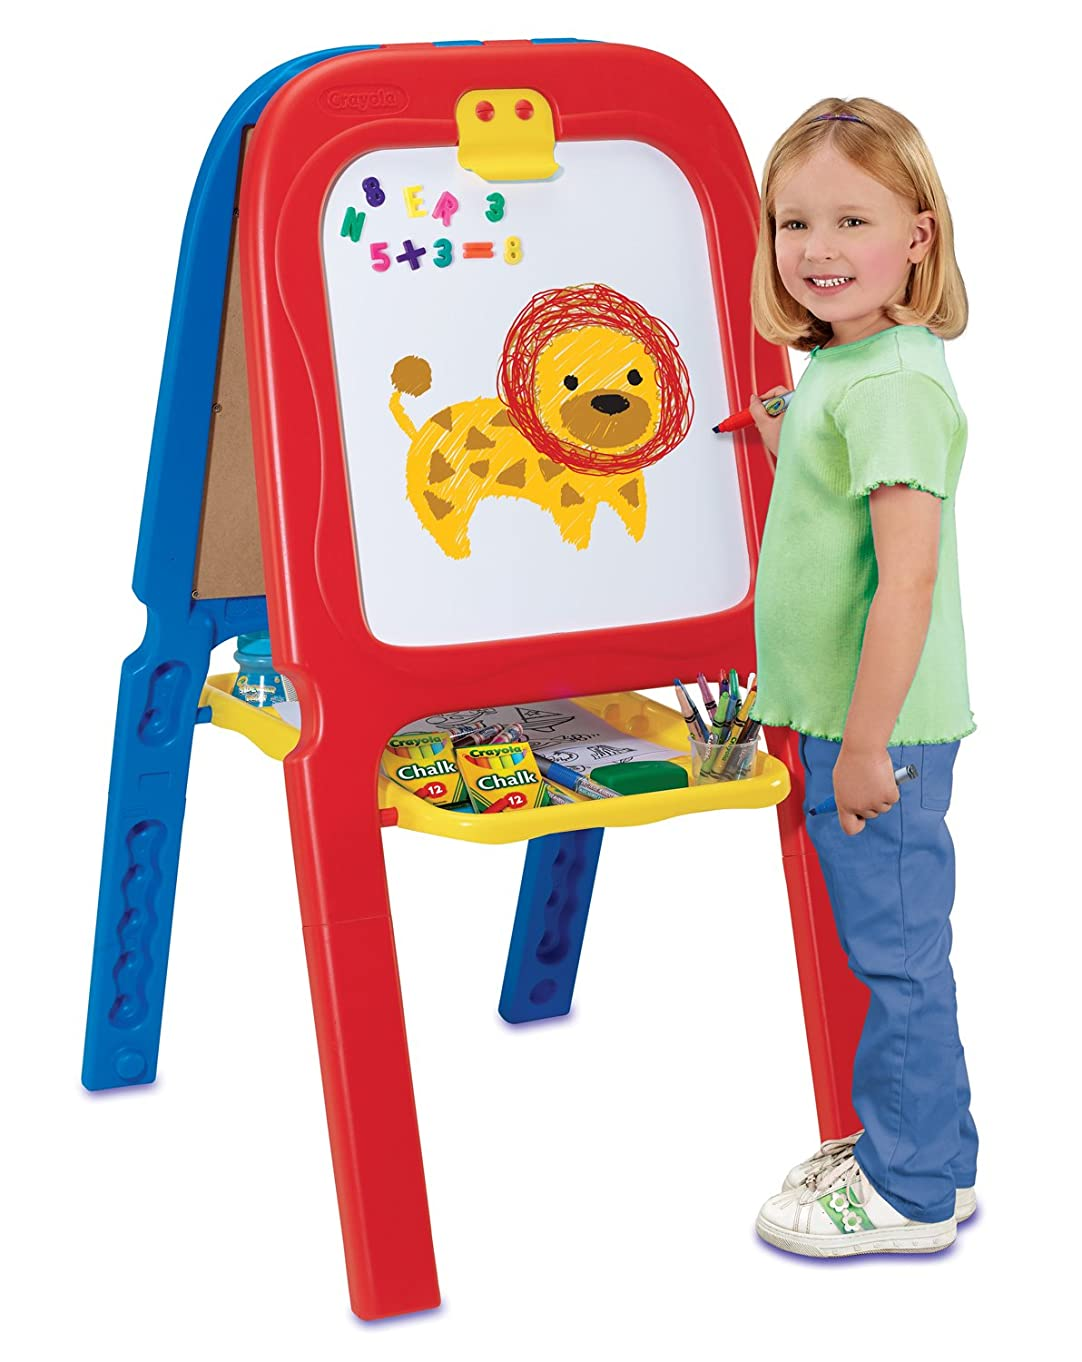 Grow'n Up Crayola 3 in 1 Double Easel